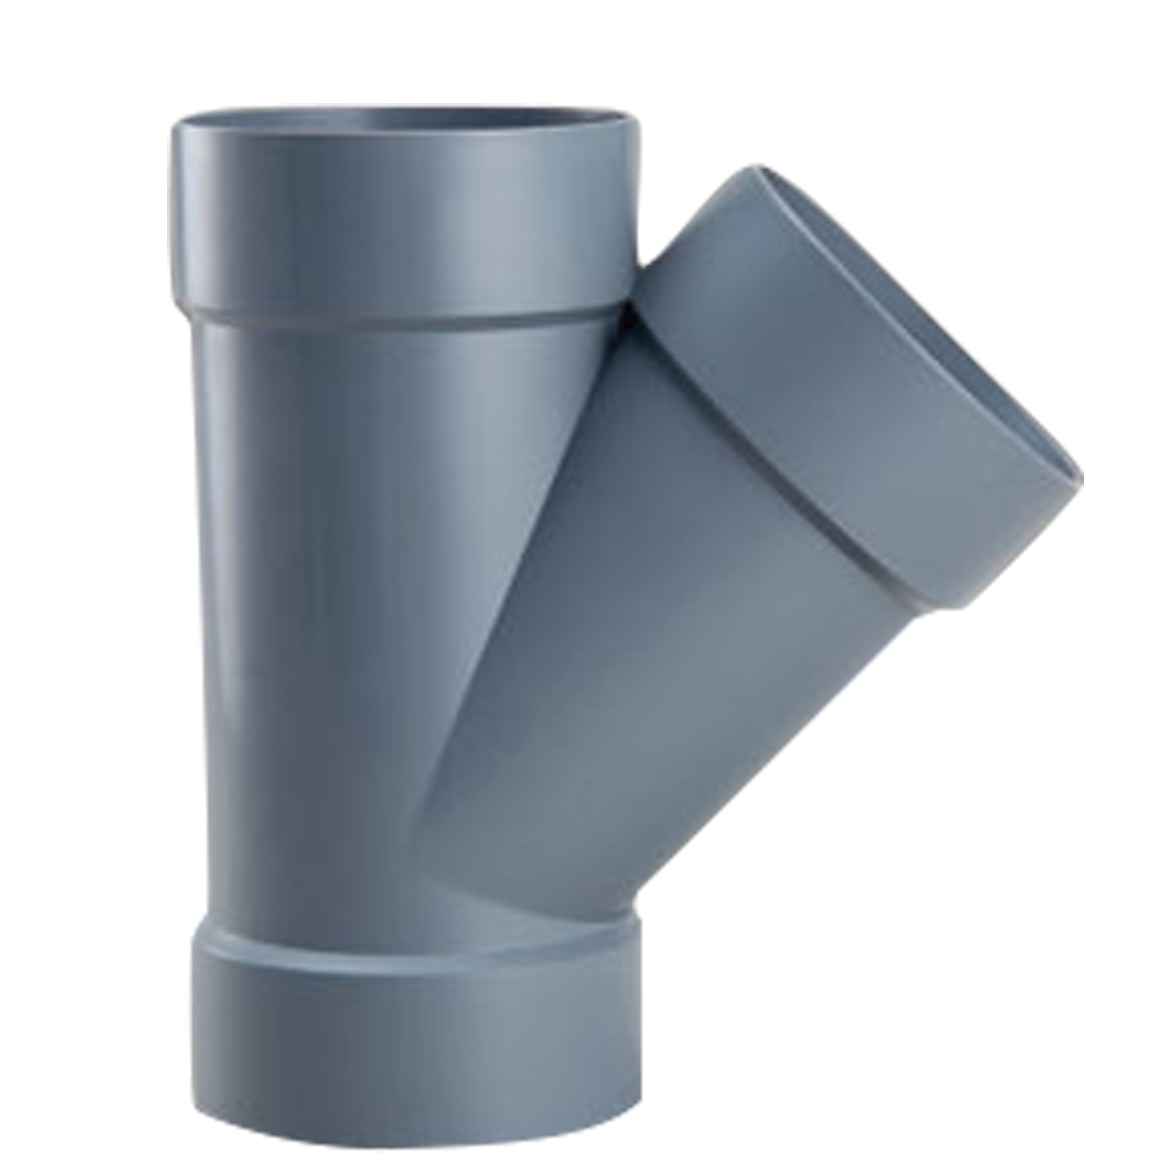 Pvc dwv astm d fittings